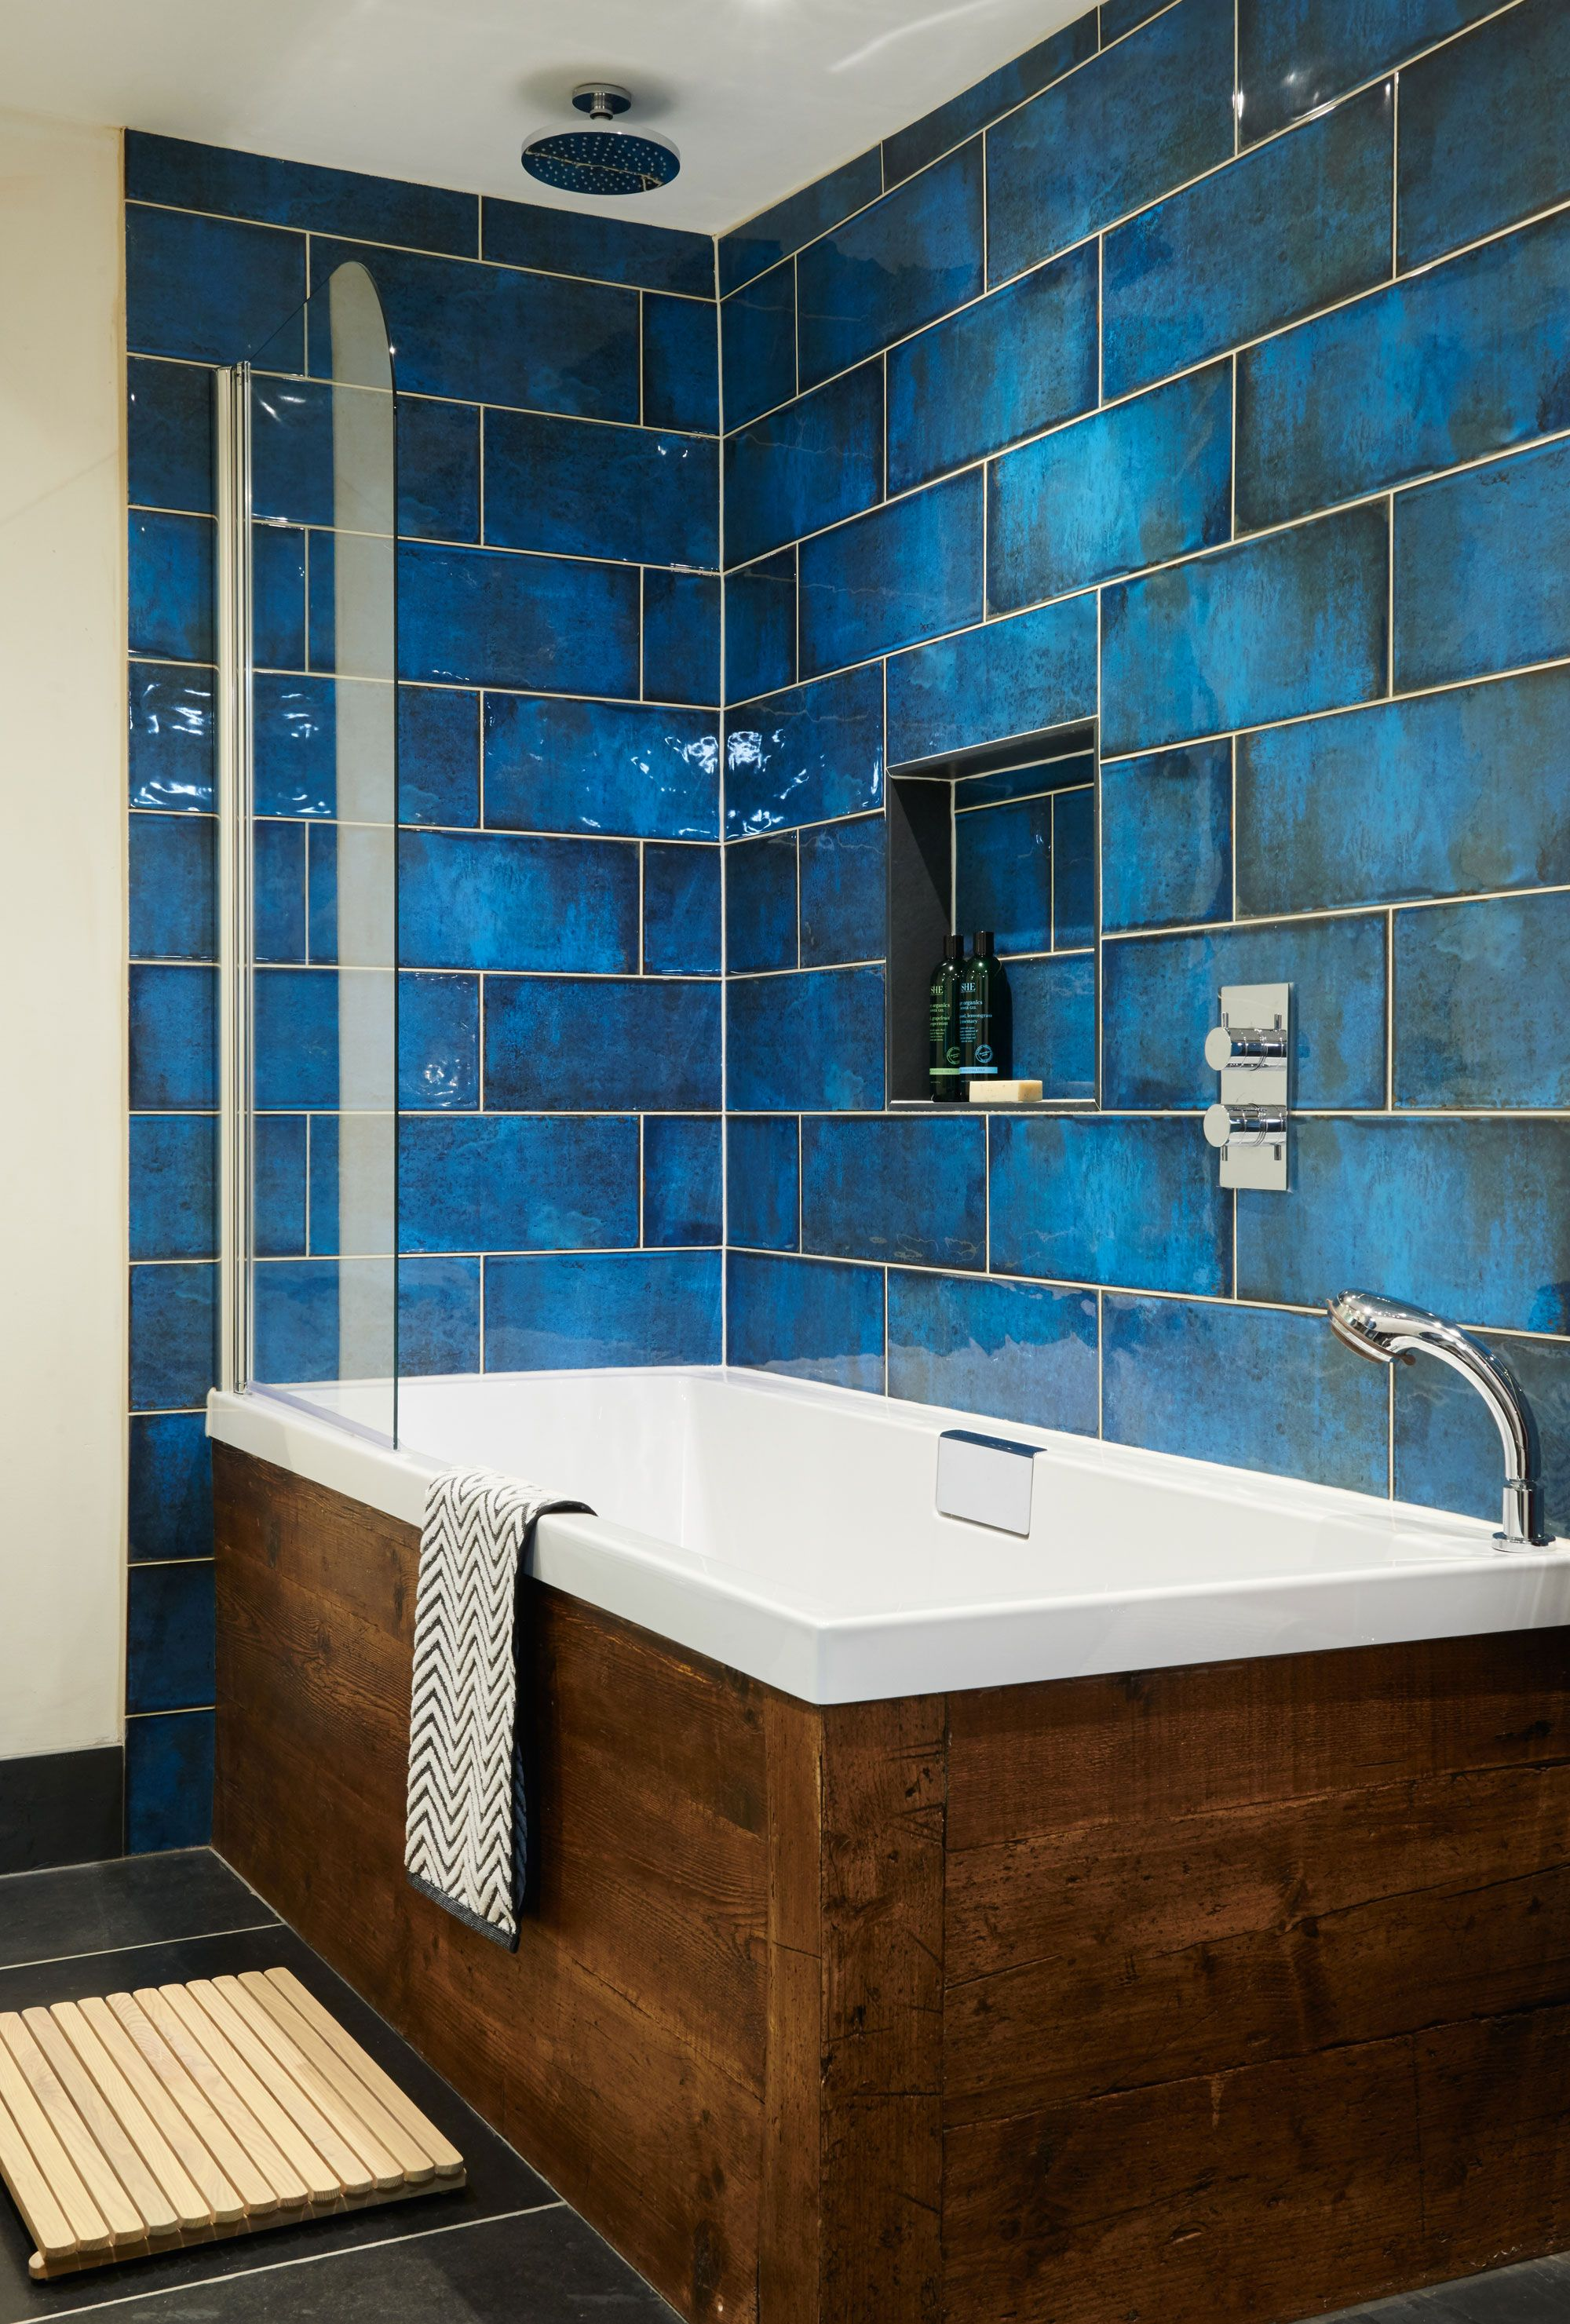 Give Your Walls The Wow Factor With Intense Blue And Glossy Finish Of Montblanc From Original Style